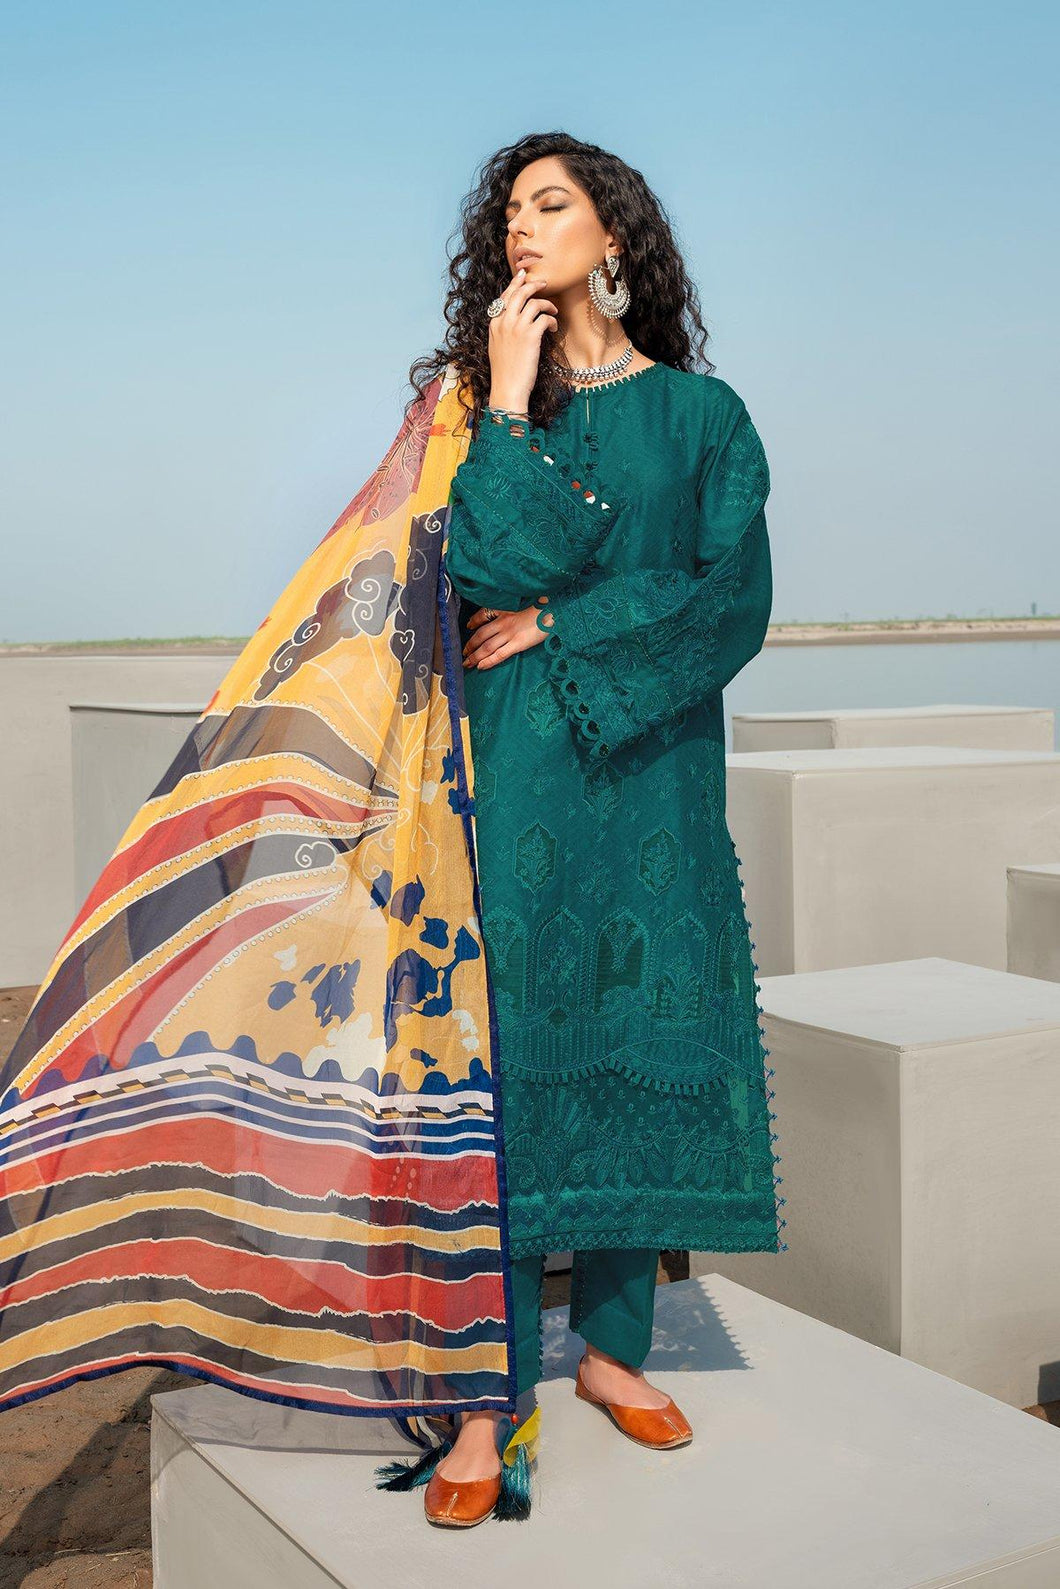 Buy Baroque Embroidered Summer Collection 2021 | Gentian Green Dress at exclusive price. Shop Pakistani designer clothes of BAROQUE LAWN, dress pak for Evening wear available at LEBAASONLINE on SALE prices Get the latest Pakistani dresses unstitched and ready to wear eid dresses in Austria, Spain, Birhamgam & UK!